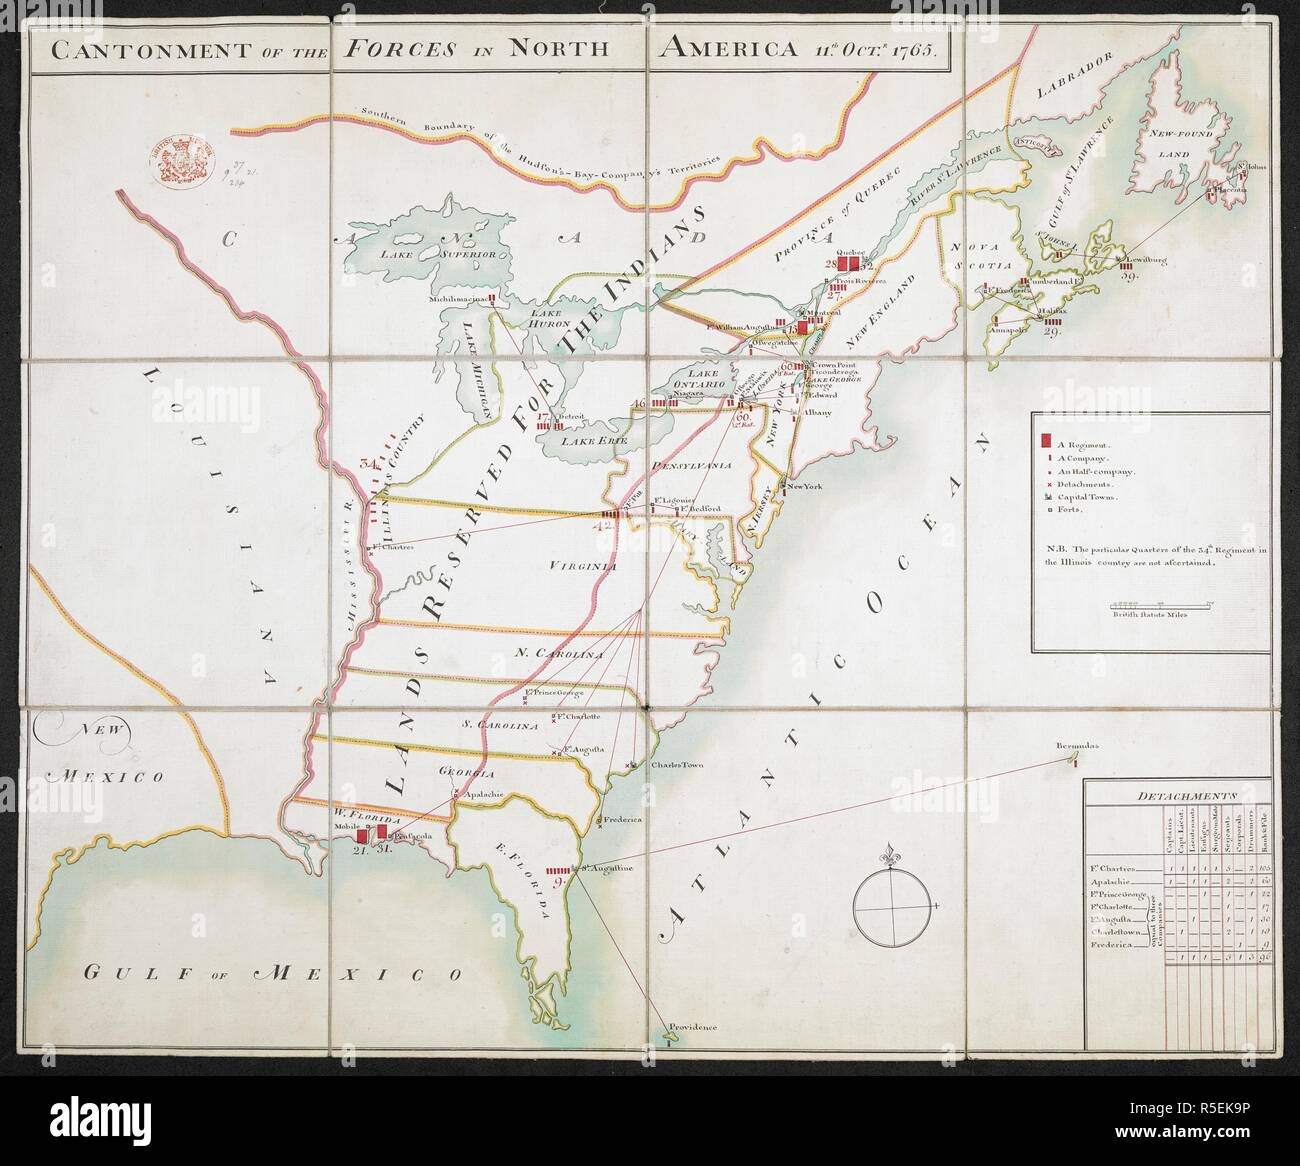 Map of the Cantonment of the Forces in North America, 11th Oct. 1765 ...